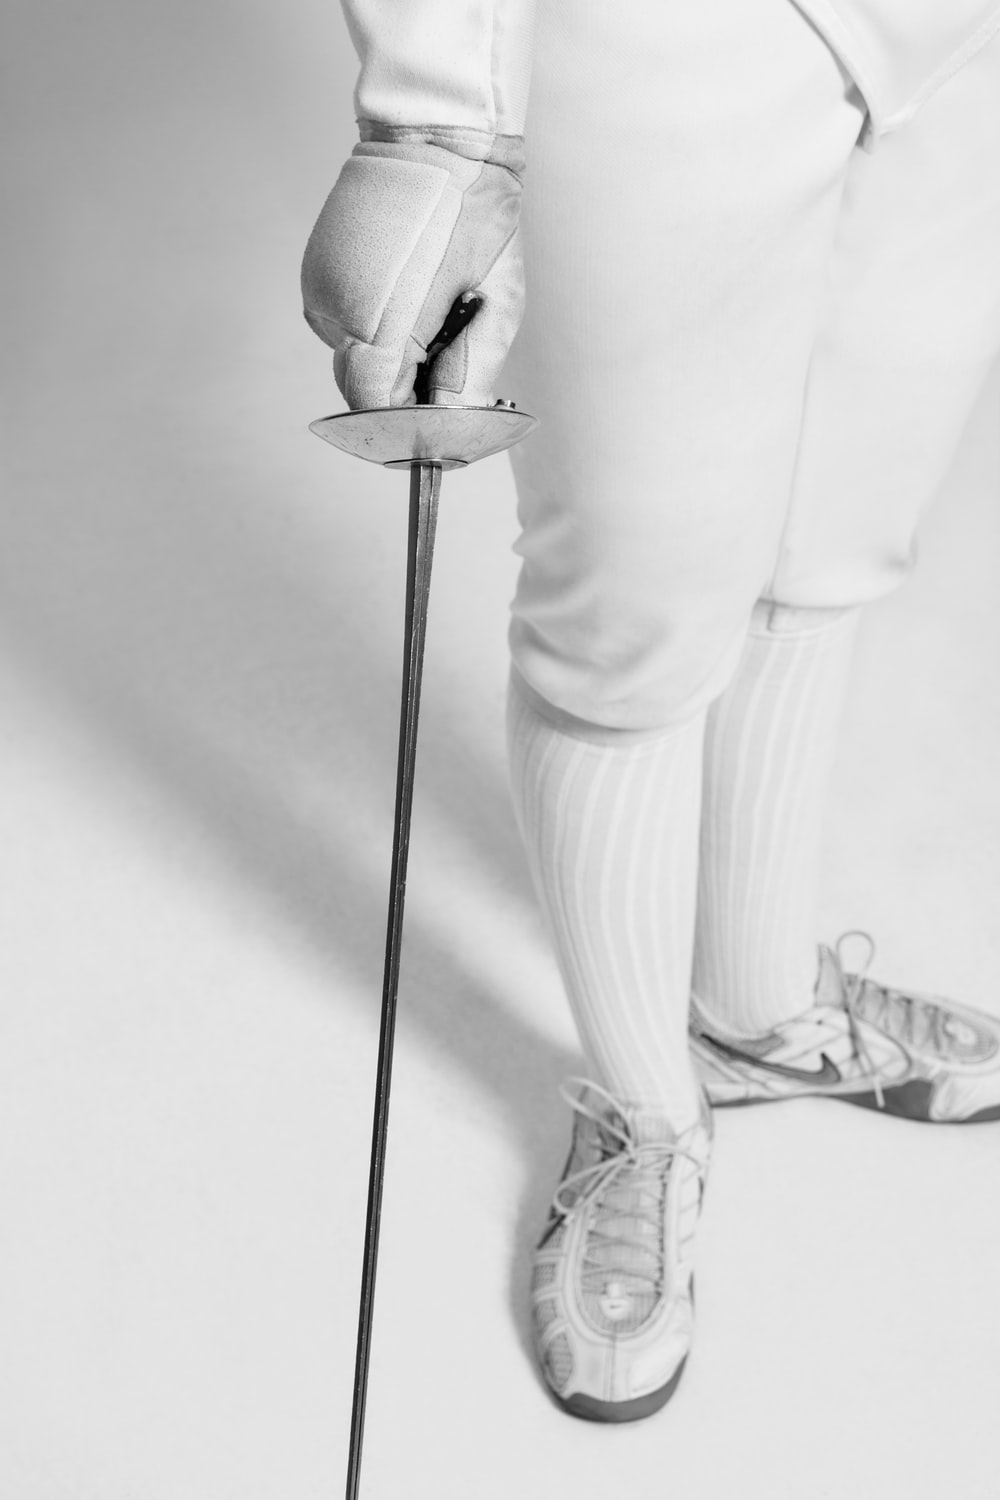 person holding fencing sword